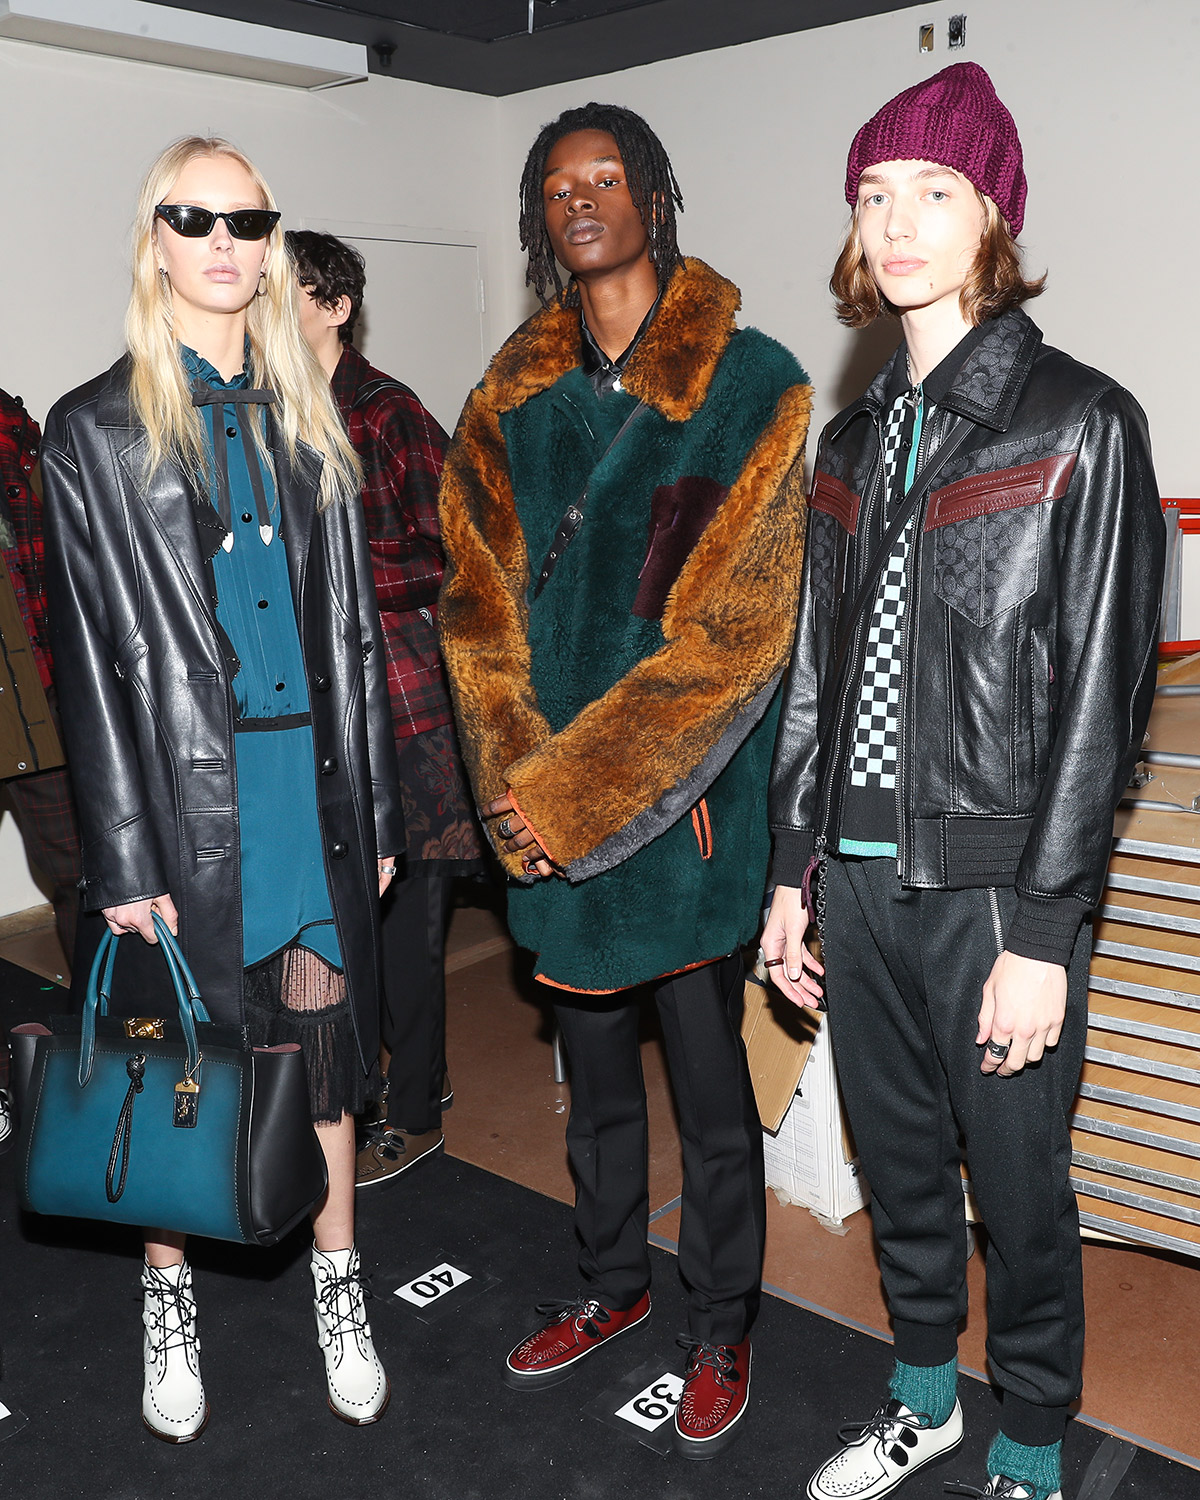 Coach Presents: the Men's and Women's Fall 2019 Runway Show